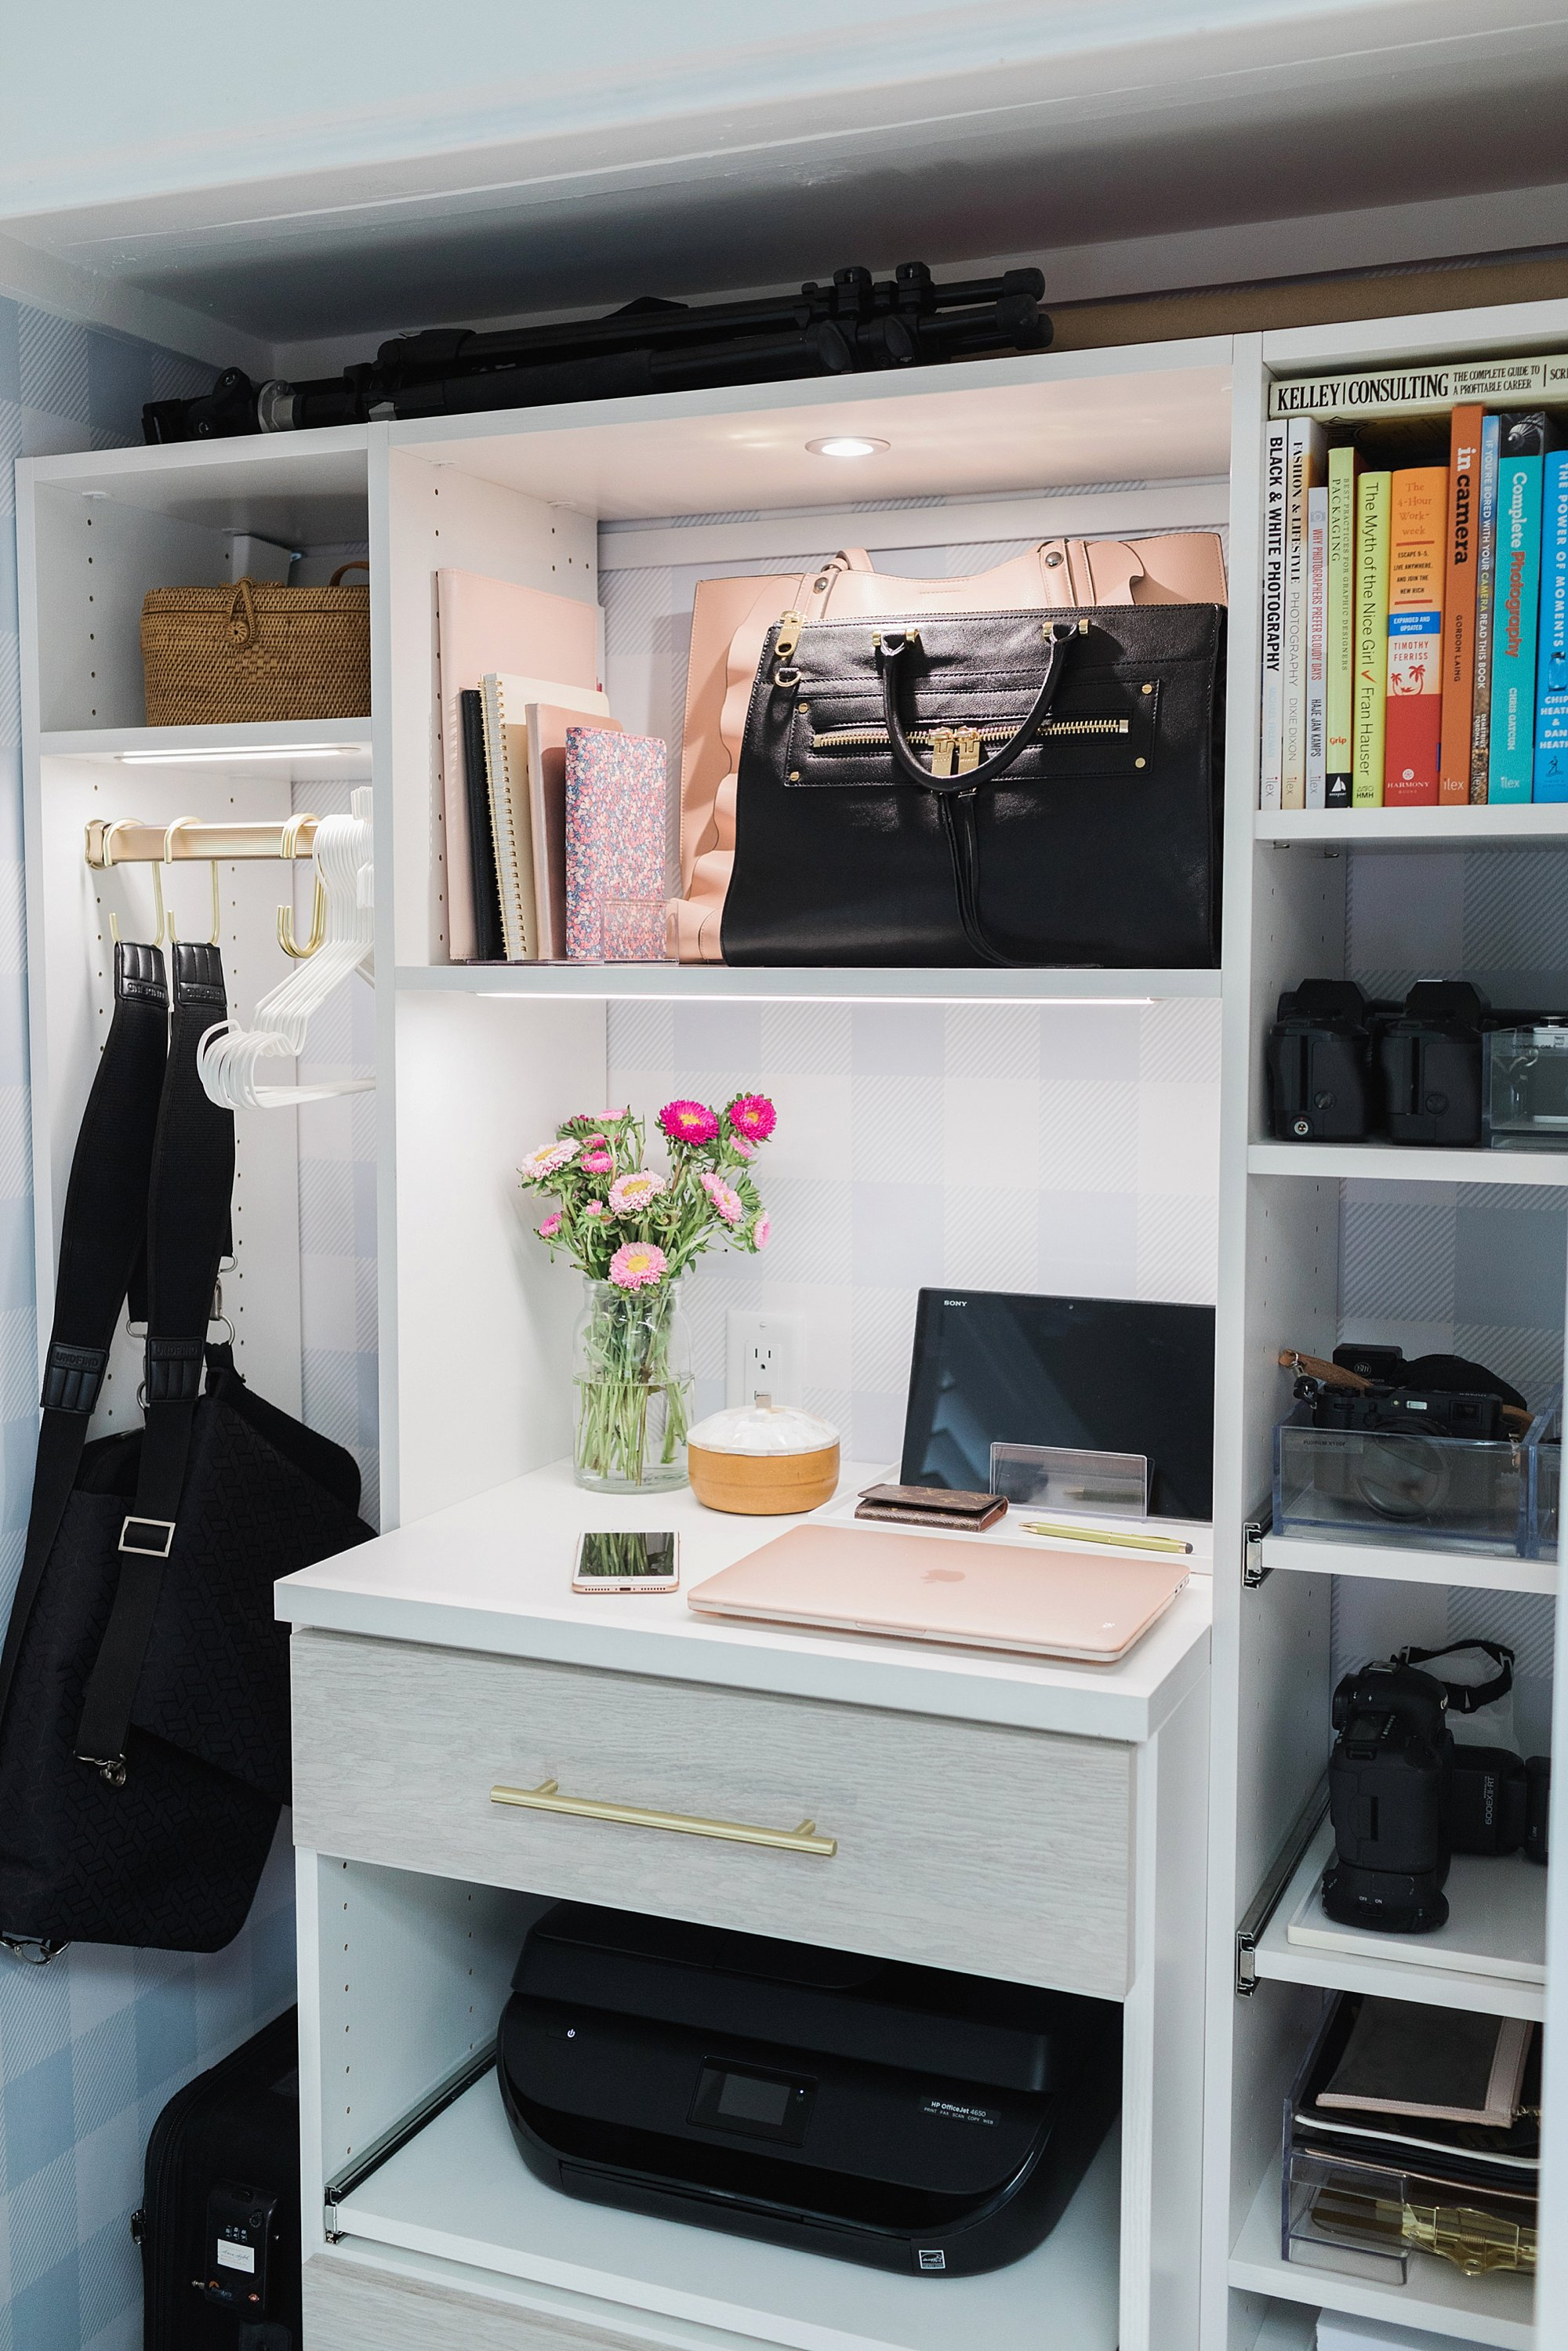 AFTER photos: final reveal of office closet reveal belonging to photographer blogger Diana Elizabeth in phoenix arizona. created by California closets and with removable buffalo check wallpaper #office #closet #wallpaper #organization #lensorganization #lensdrawer